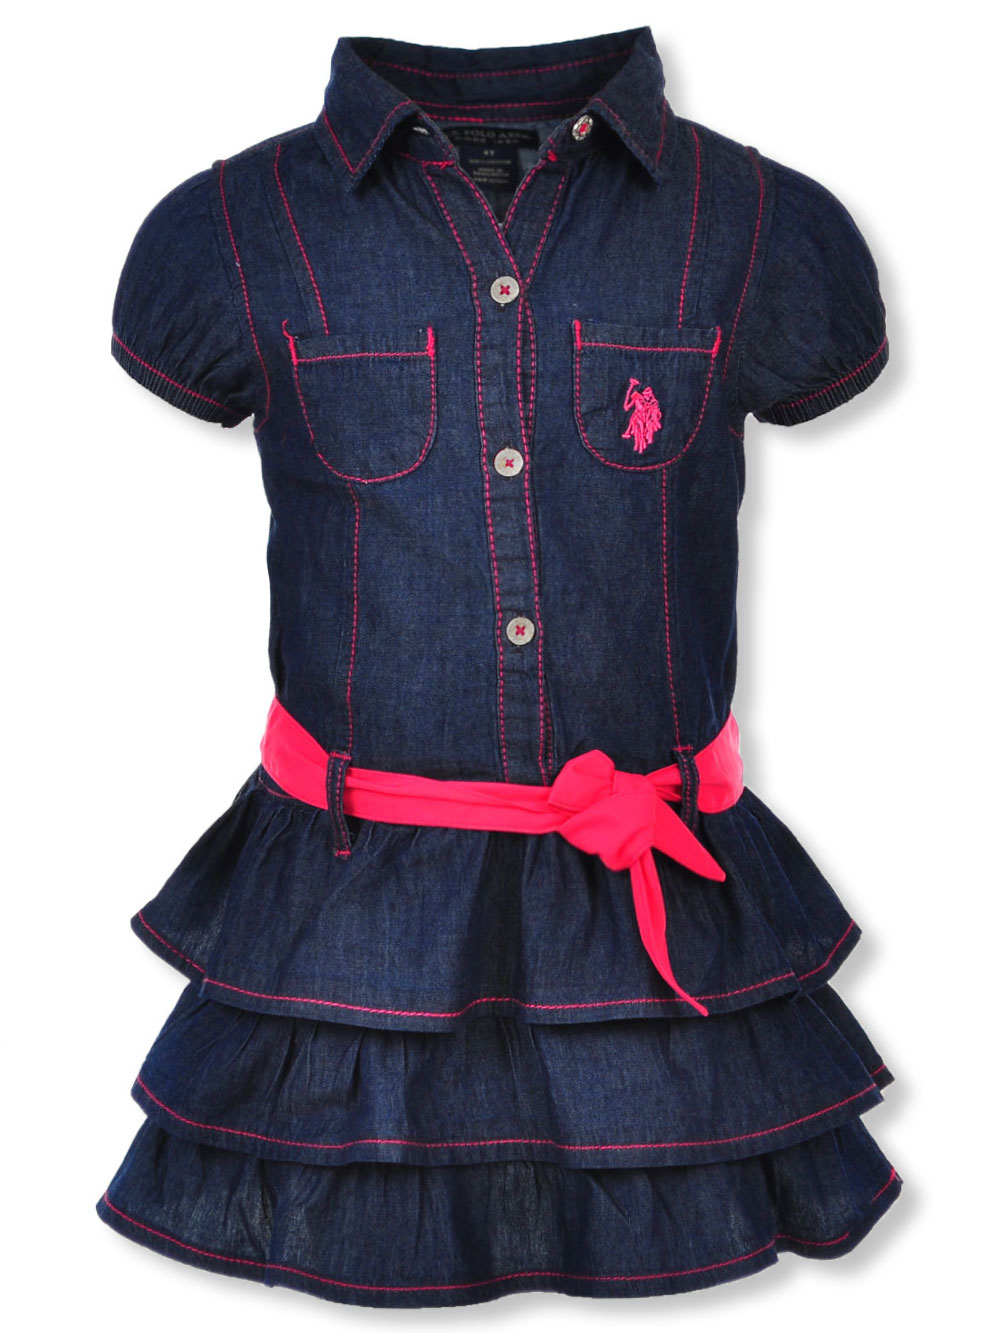 629ebd745 Girls' Belted Dress by U.S. Polo Assn. in Denim/pink from Cookie's Kids